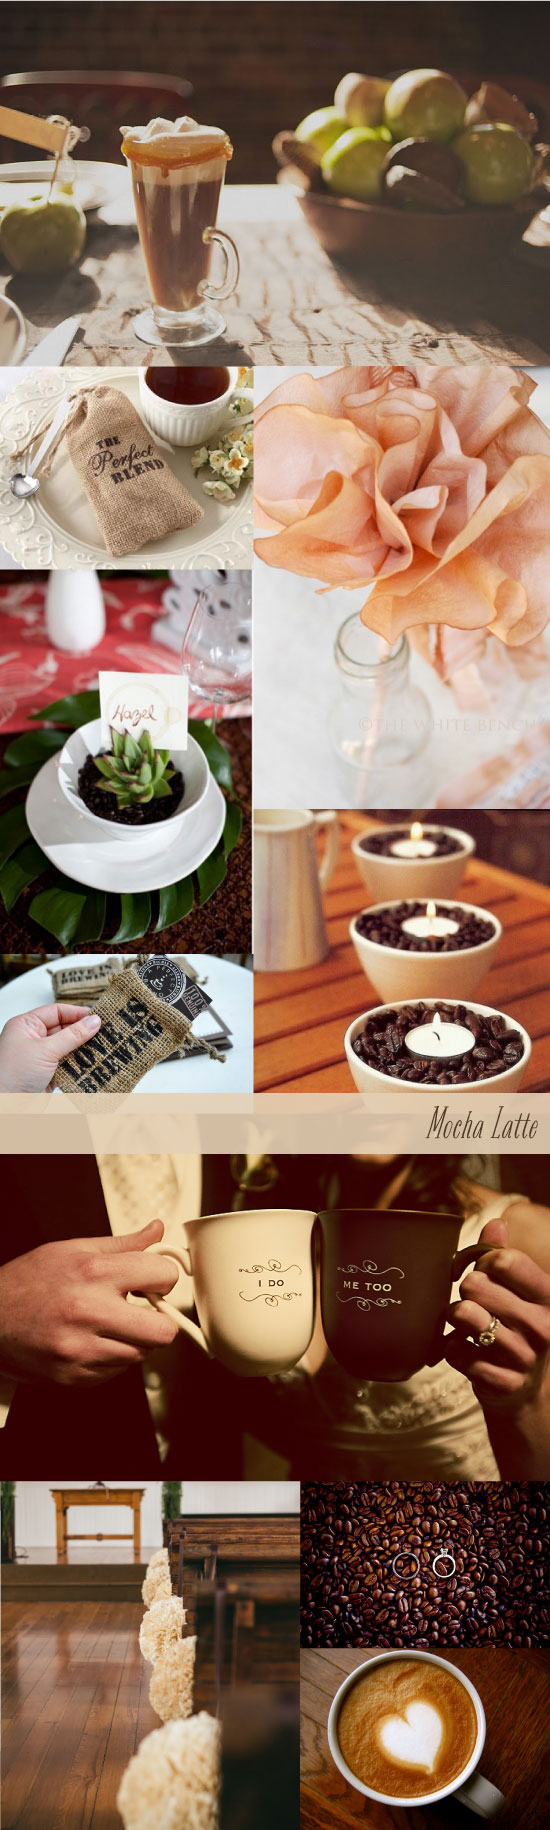 Mocha Latte Coffee Wedding Inspiration Board